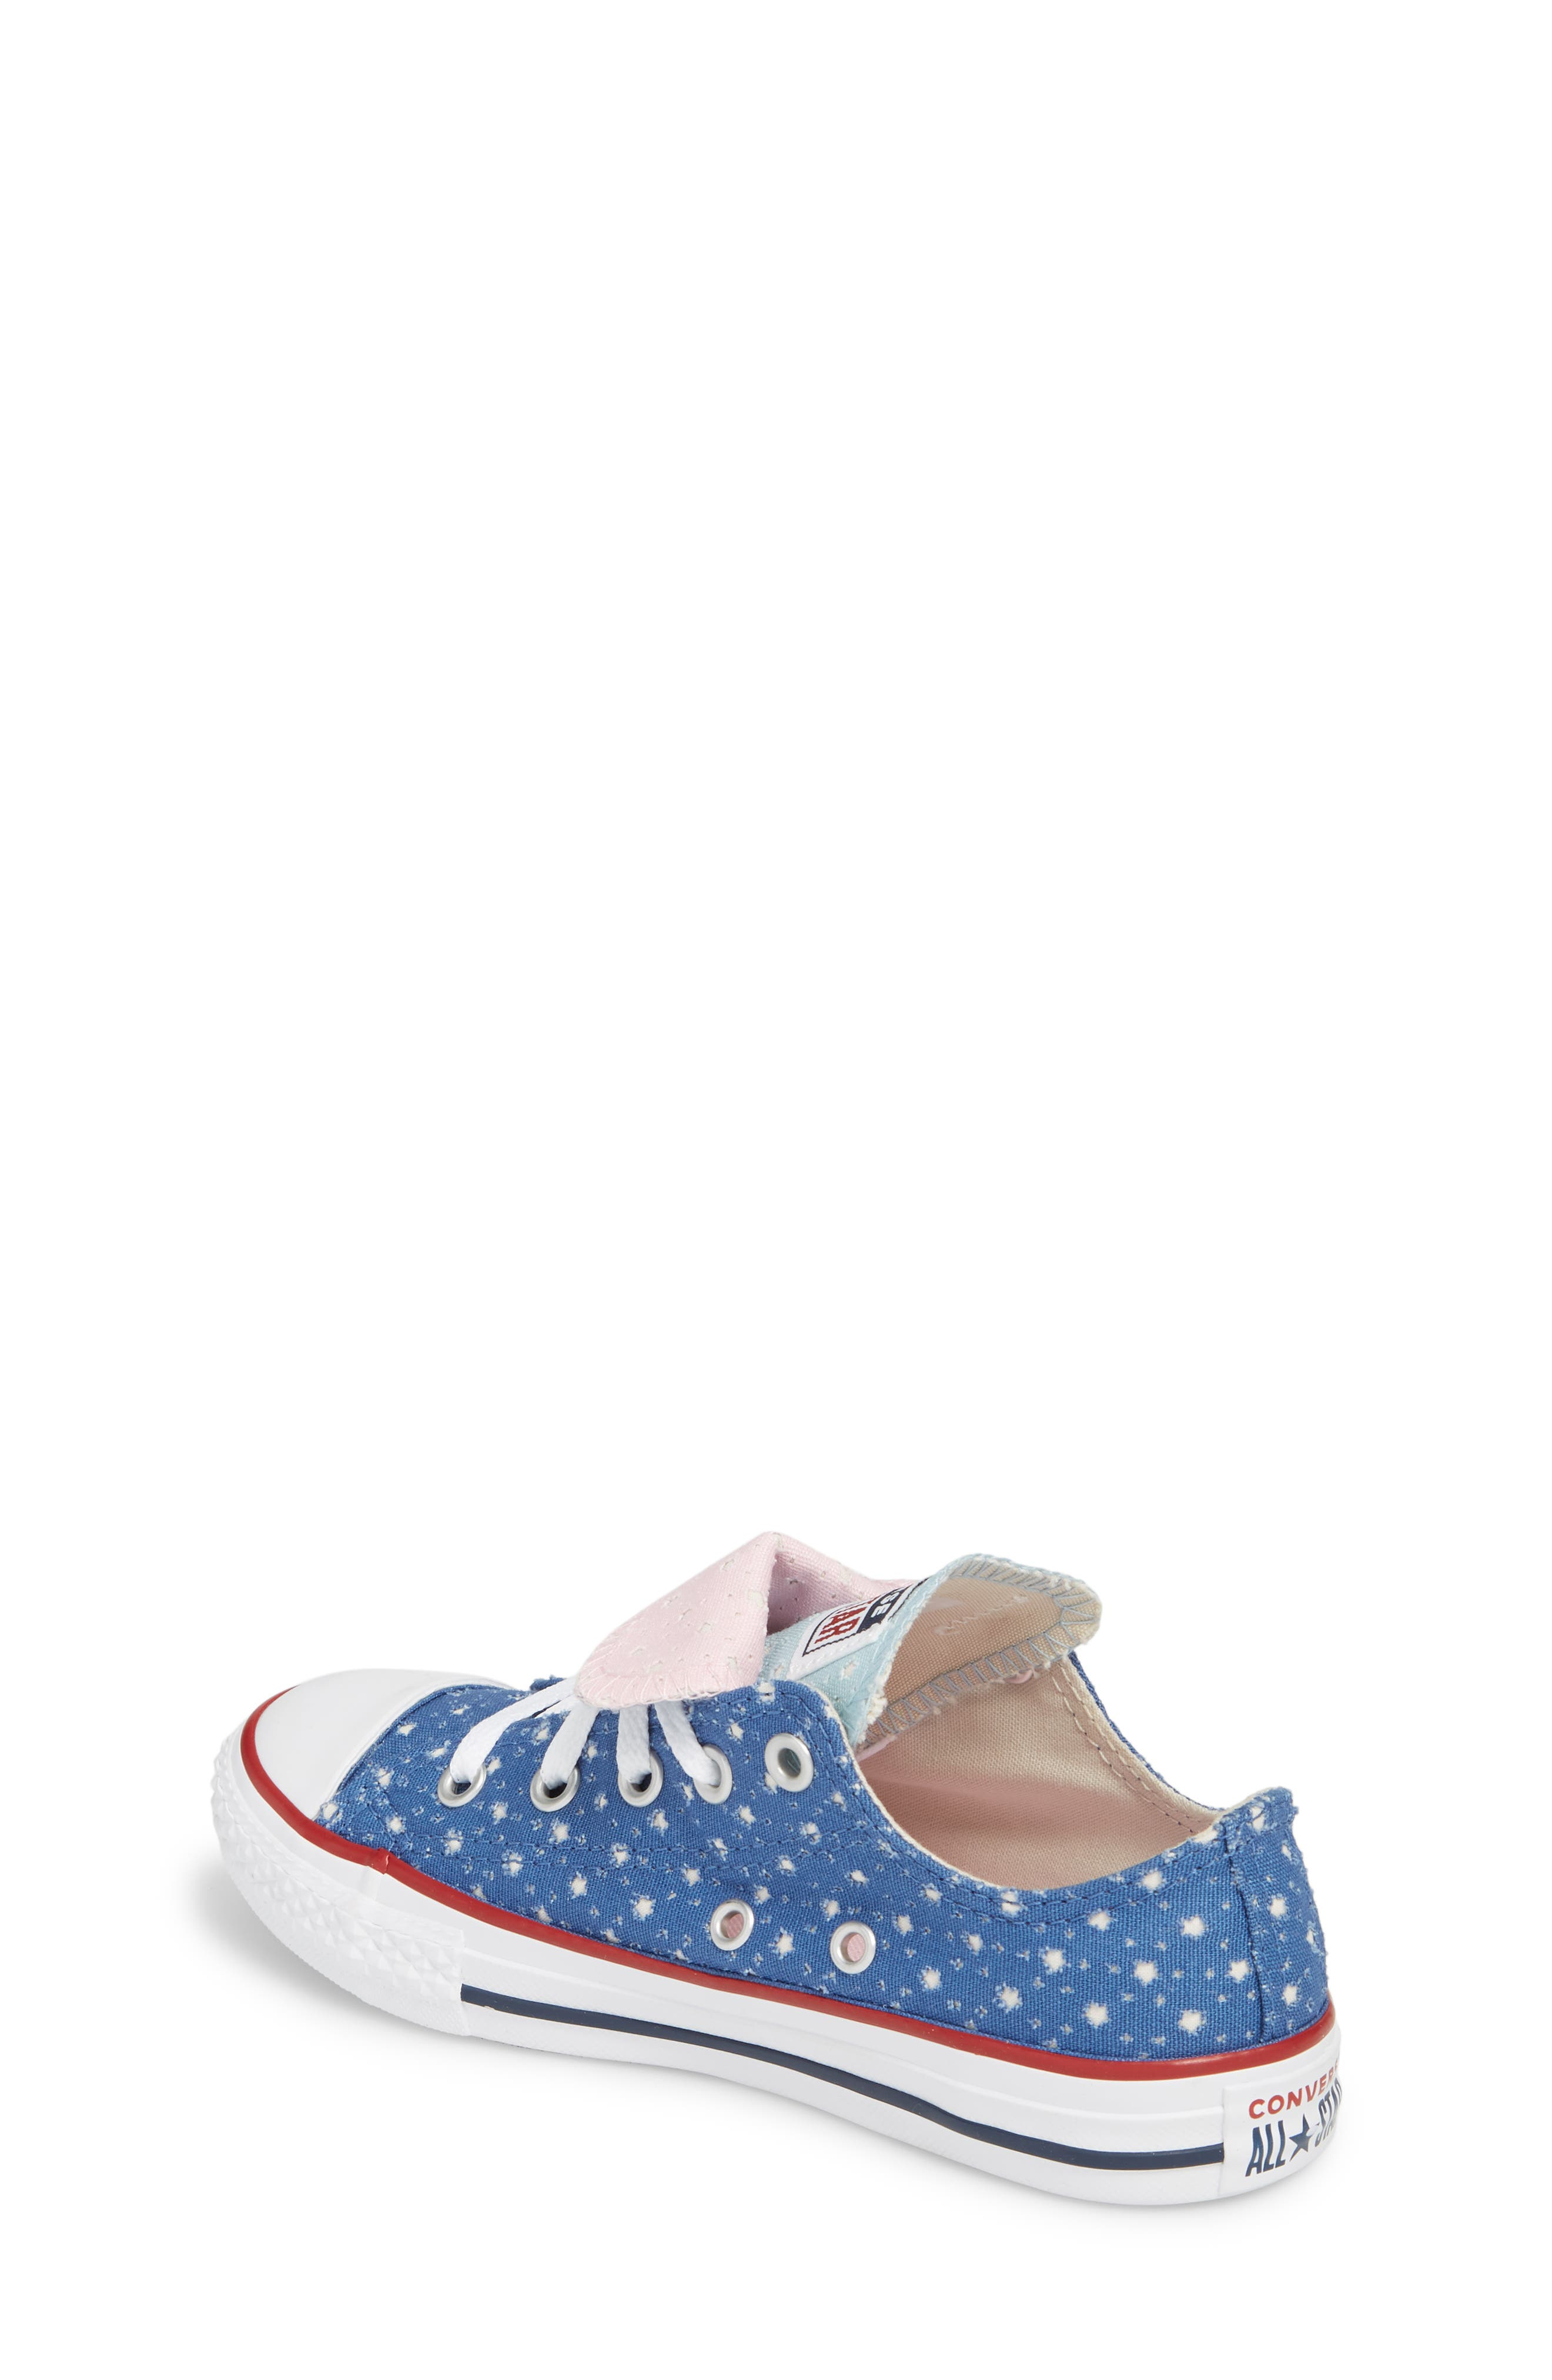 Chuck Taylor<sup>®</sup> All Star<sup>®</sup> Double Tongue Sneaker,                             Alternate thumbnail 4, color,